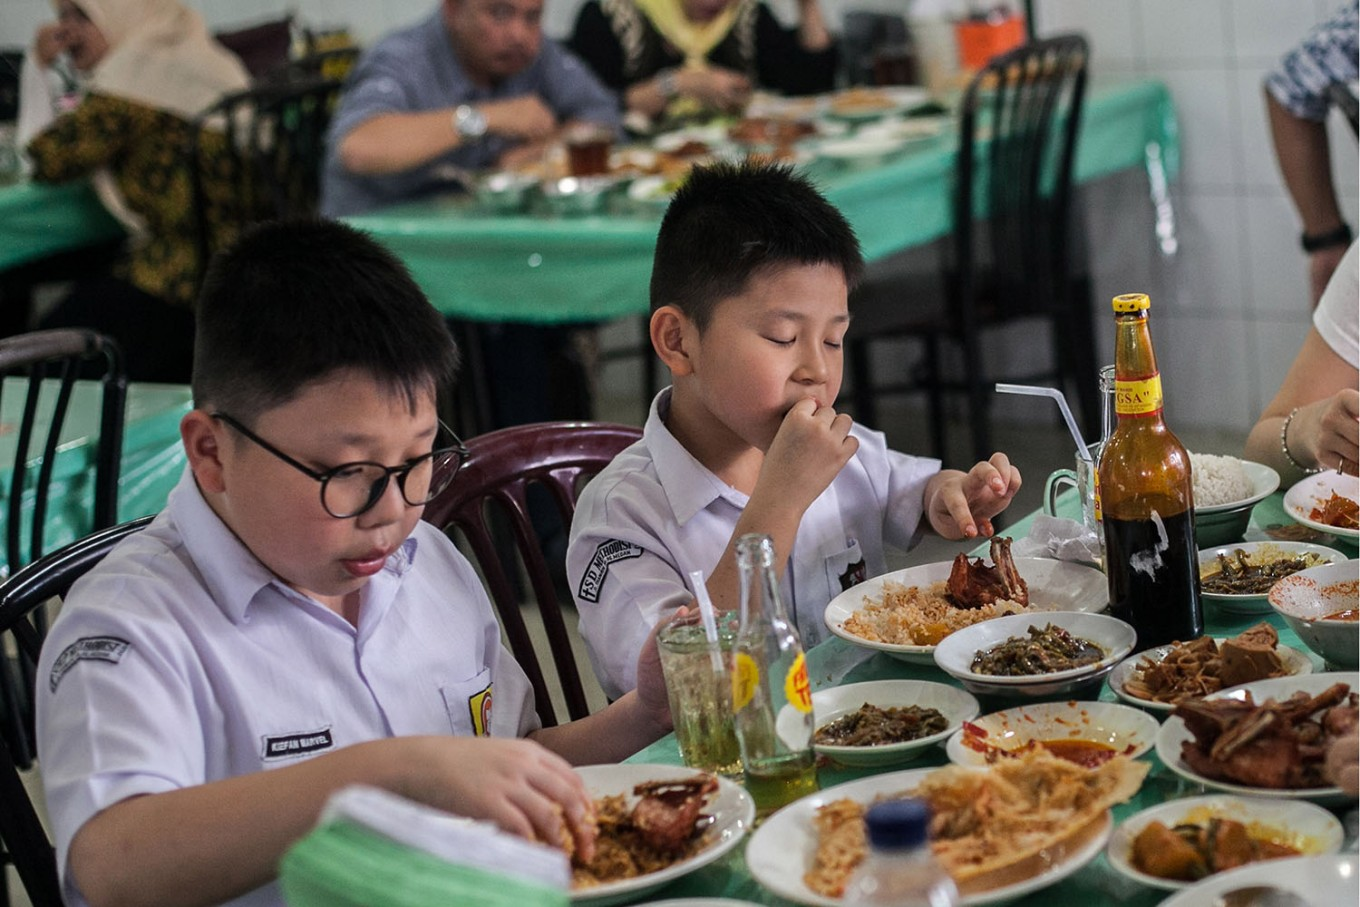 Two children in school uniform enjoy food at a Padang restaurant in Medan, North Sumatra. JP/Andri Ginting